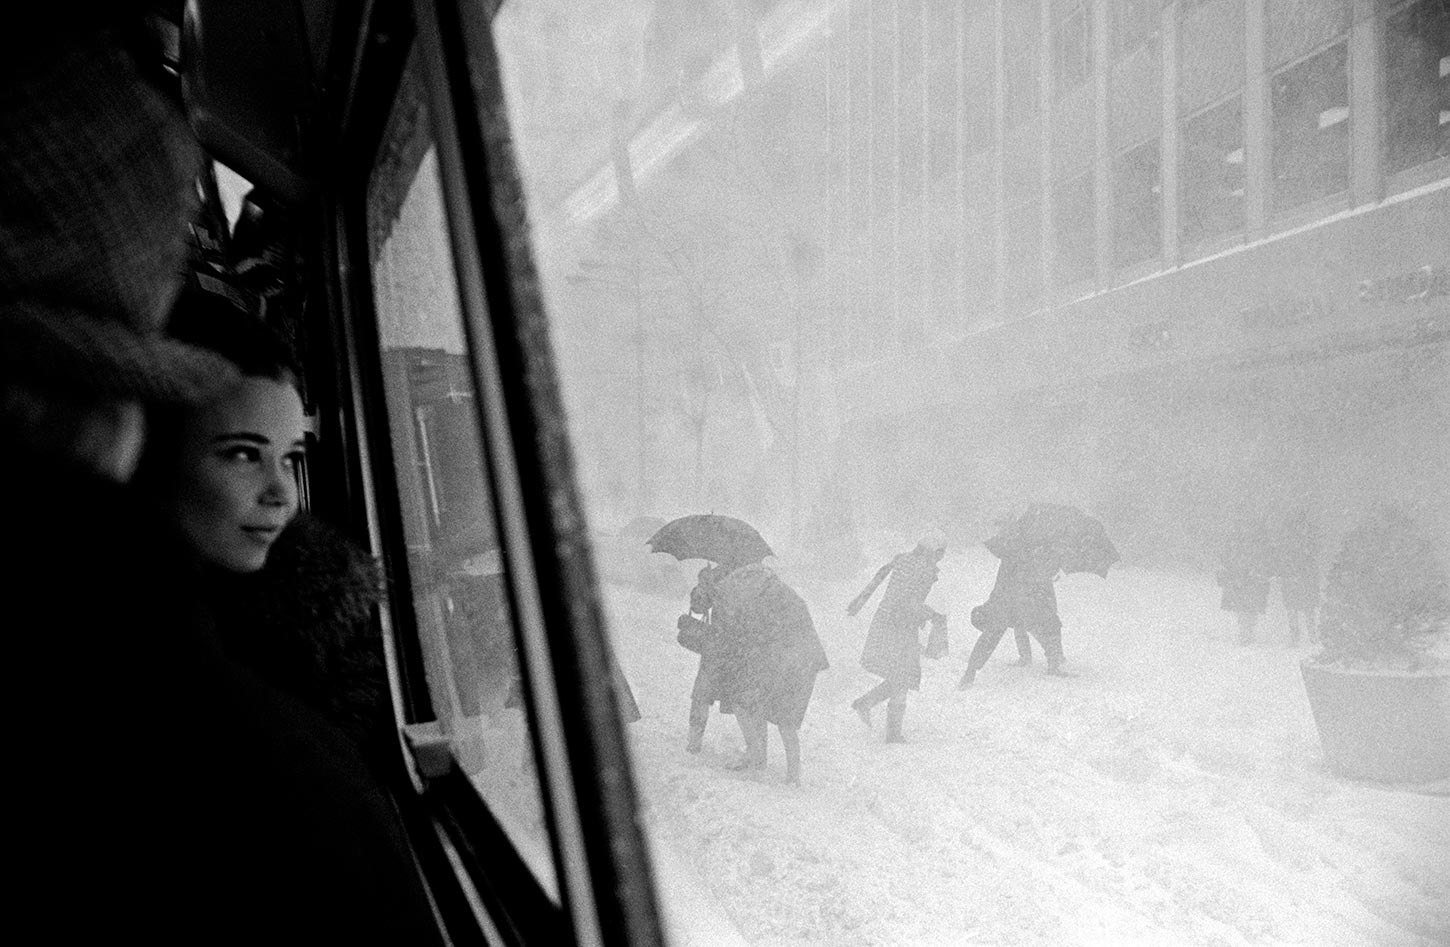 Girl in bus and figures in street during snowstorm. New York City. 1967.